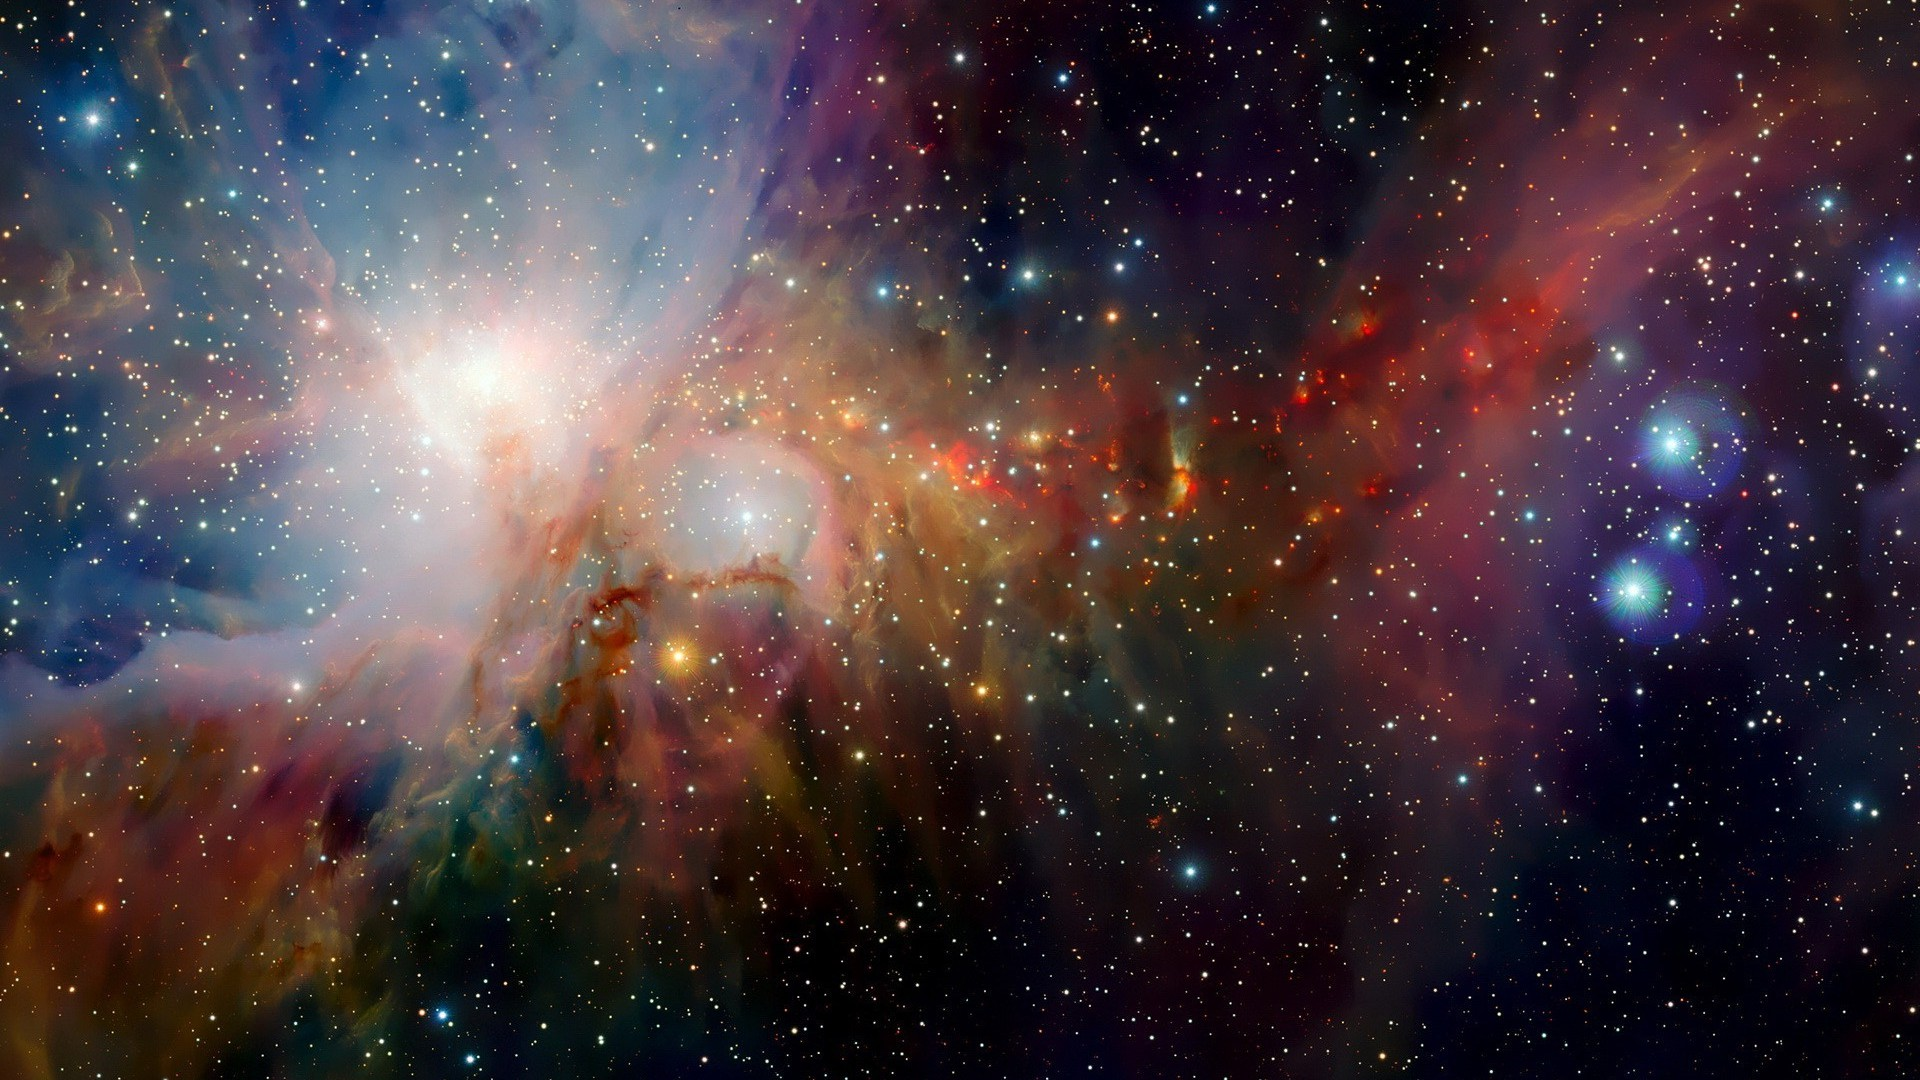 Wallpapers Space Awesome Nebula Wallpaper 1920x1080